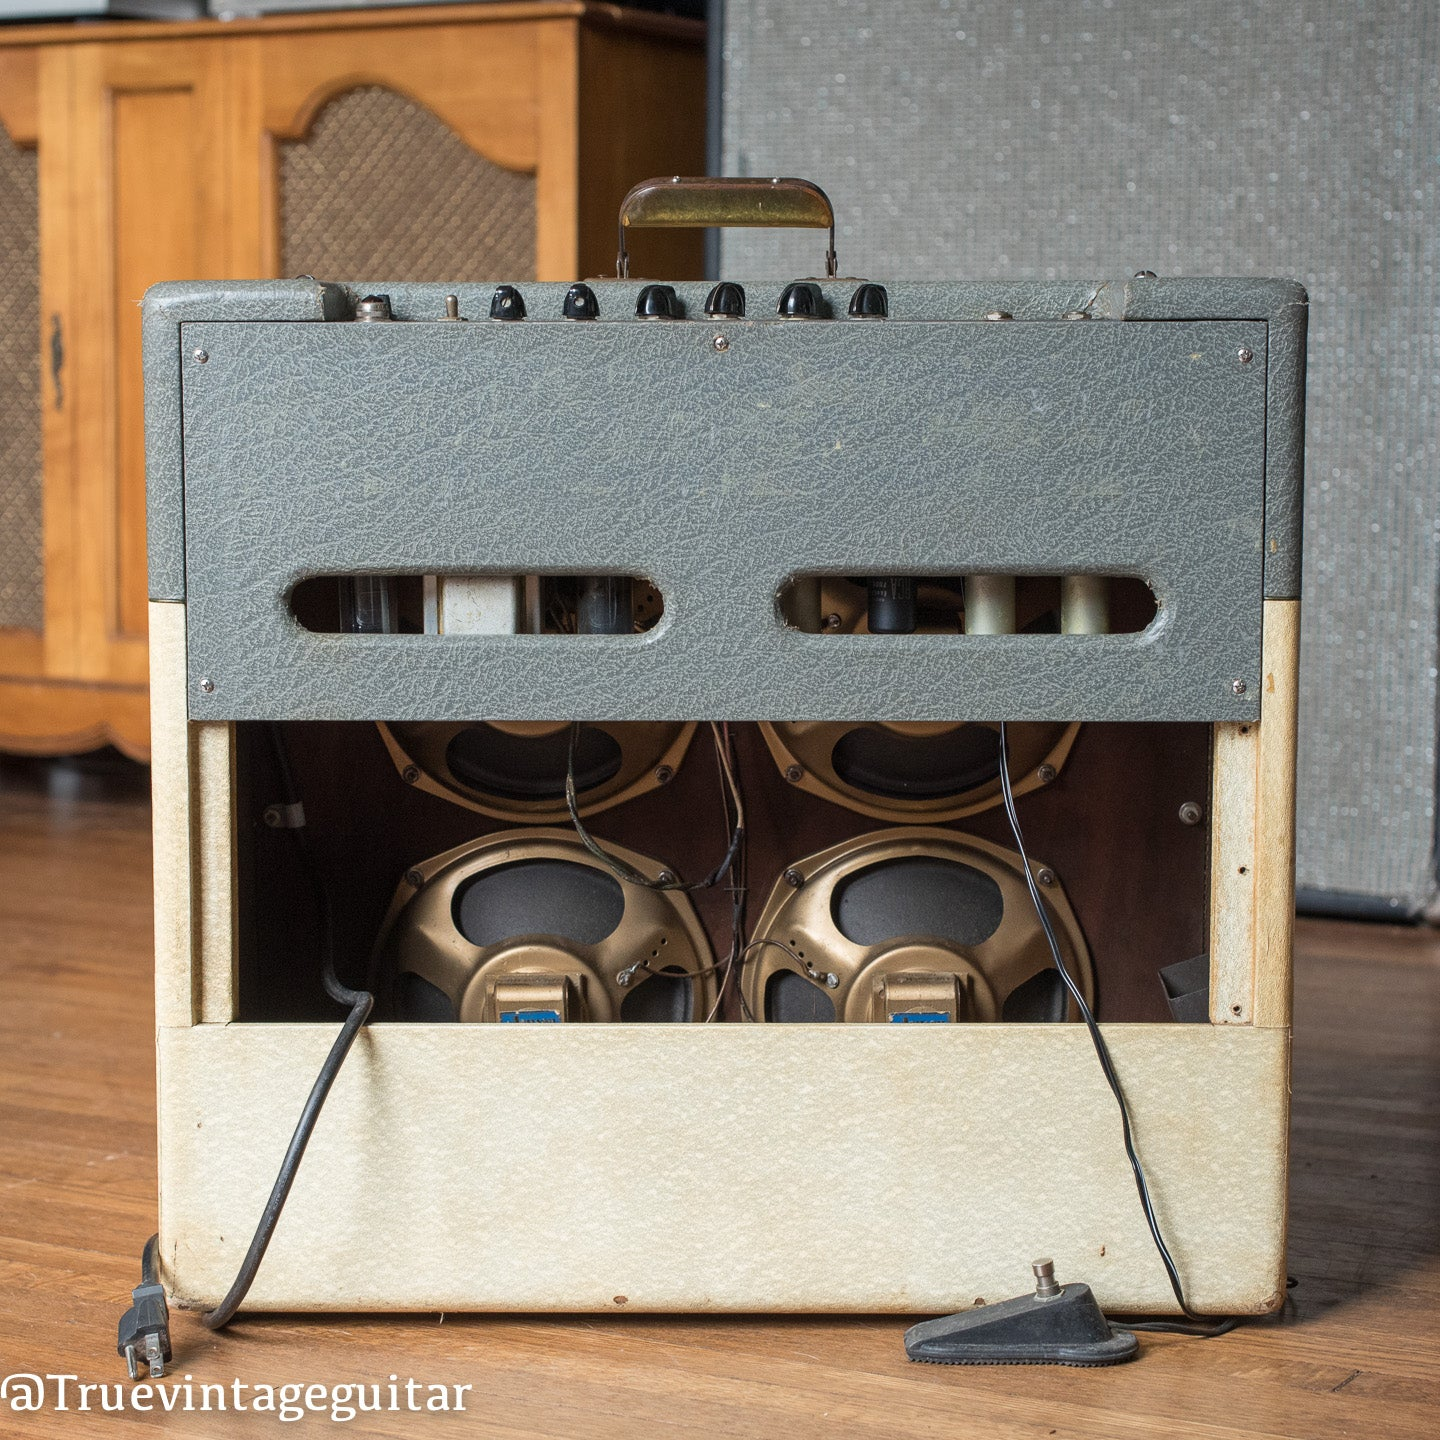 1950s Gibson amp four speakers